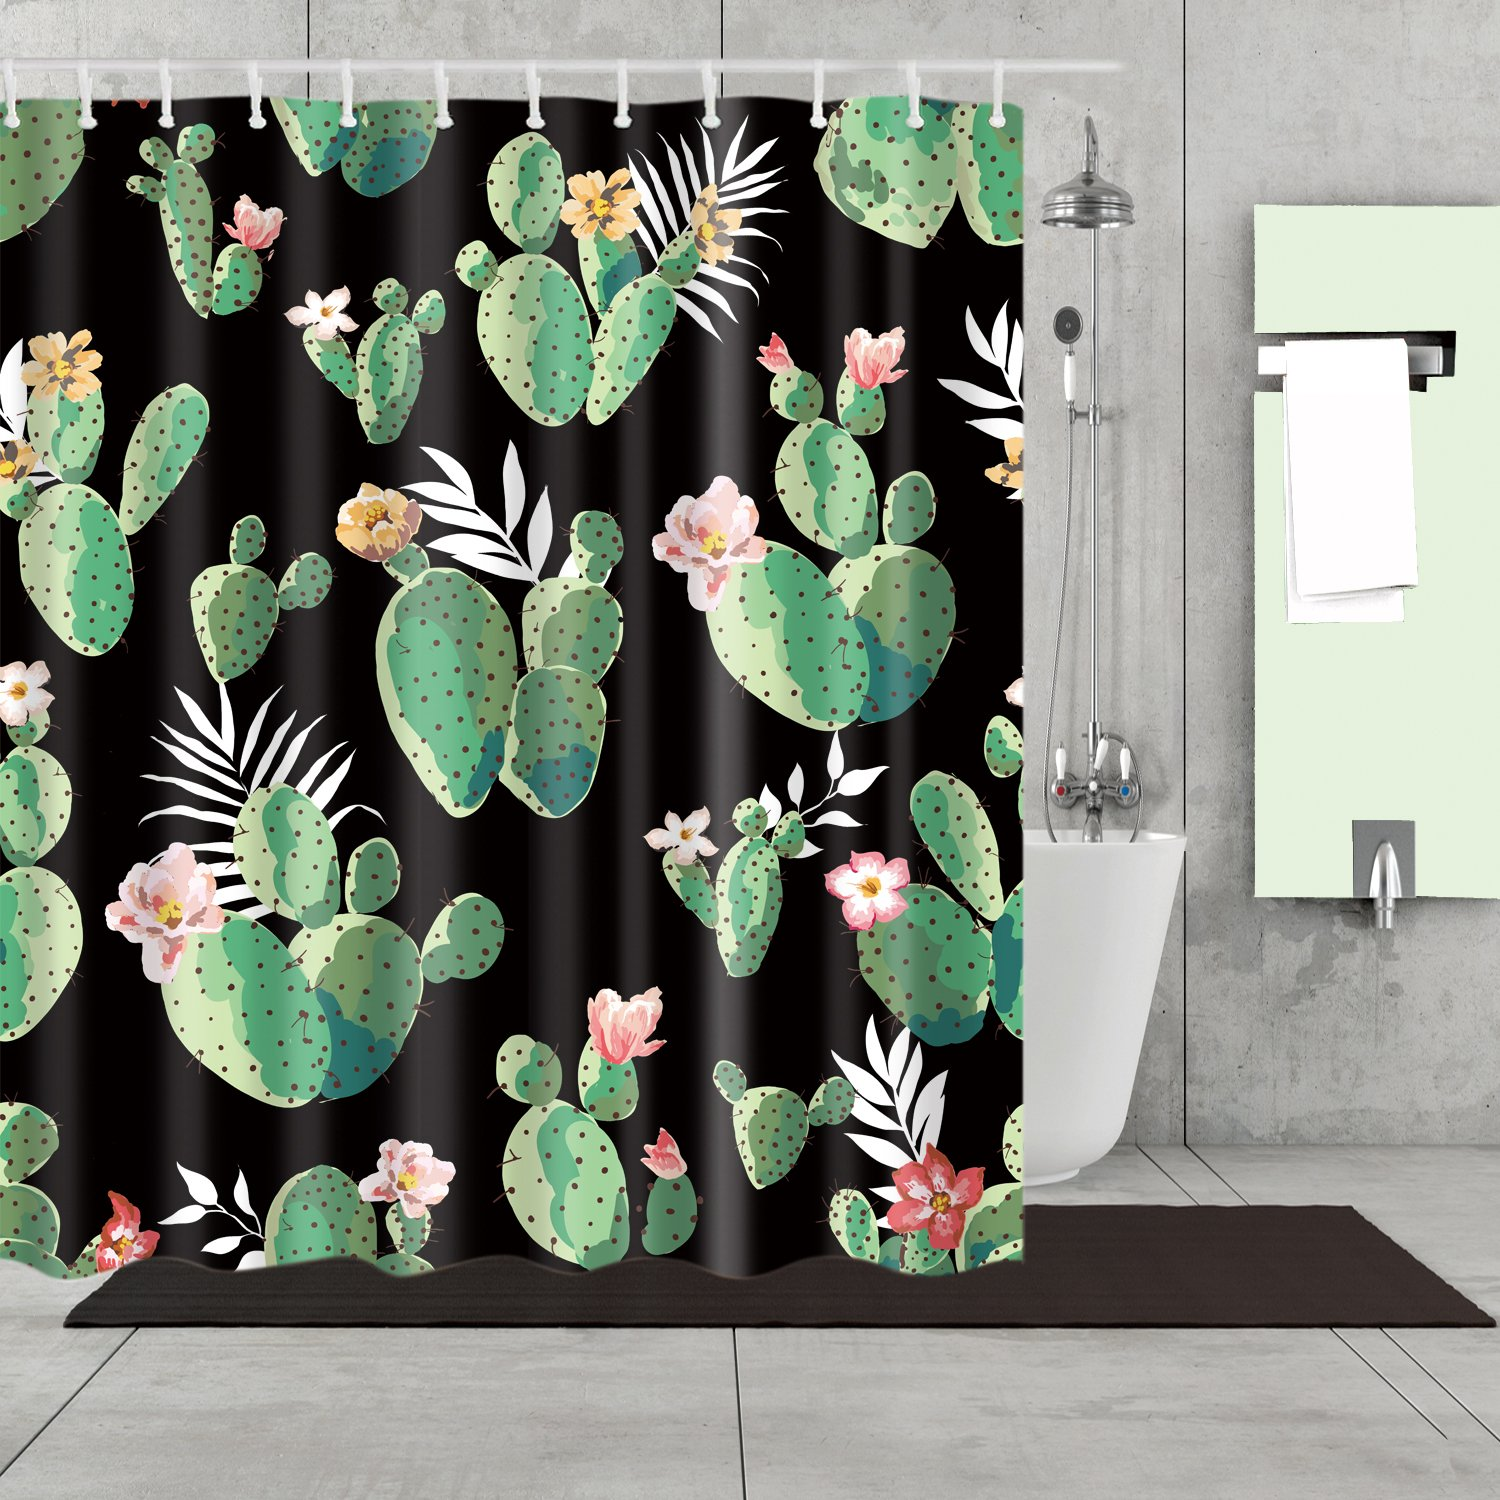 Black Backdrop Queen Of The Night Cactus Shower Curtain Bathroom Decor With Images Cactus Shower Curtain Shower Curtain Polyester Fabric Shower Curtains